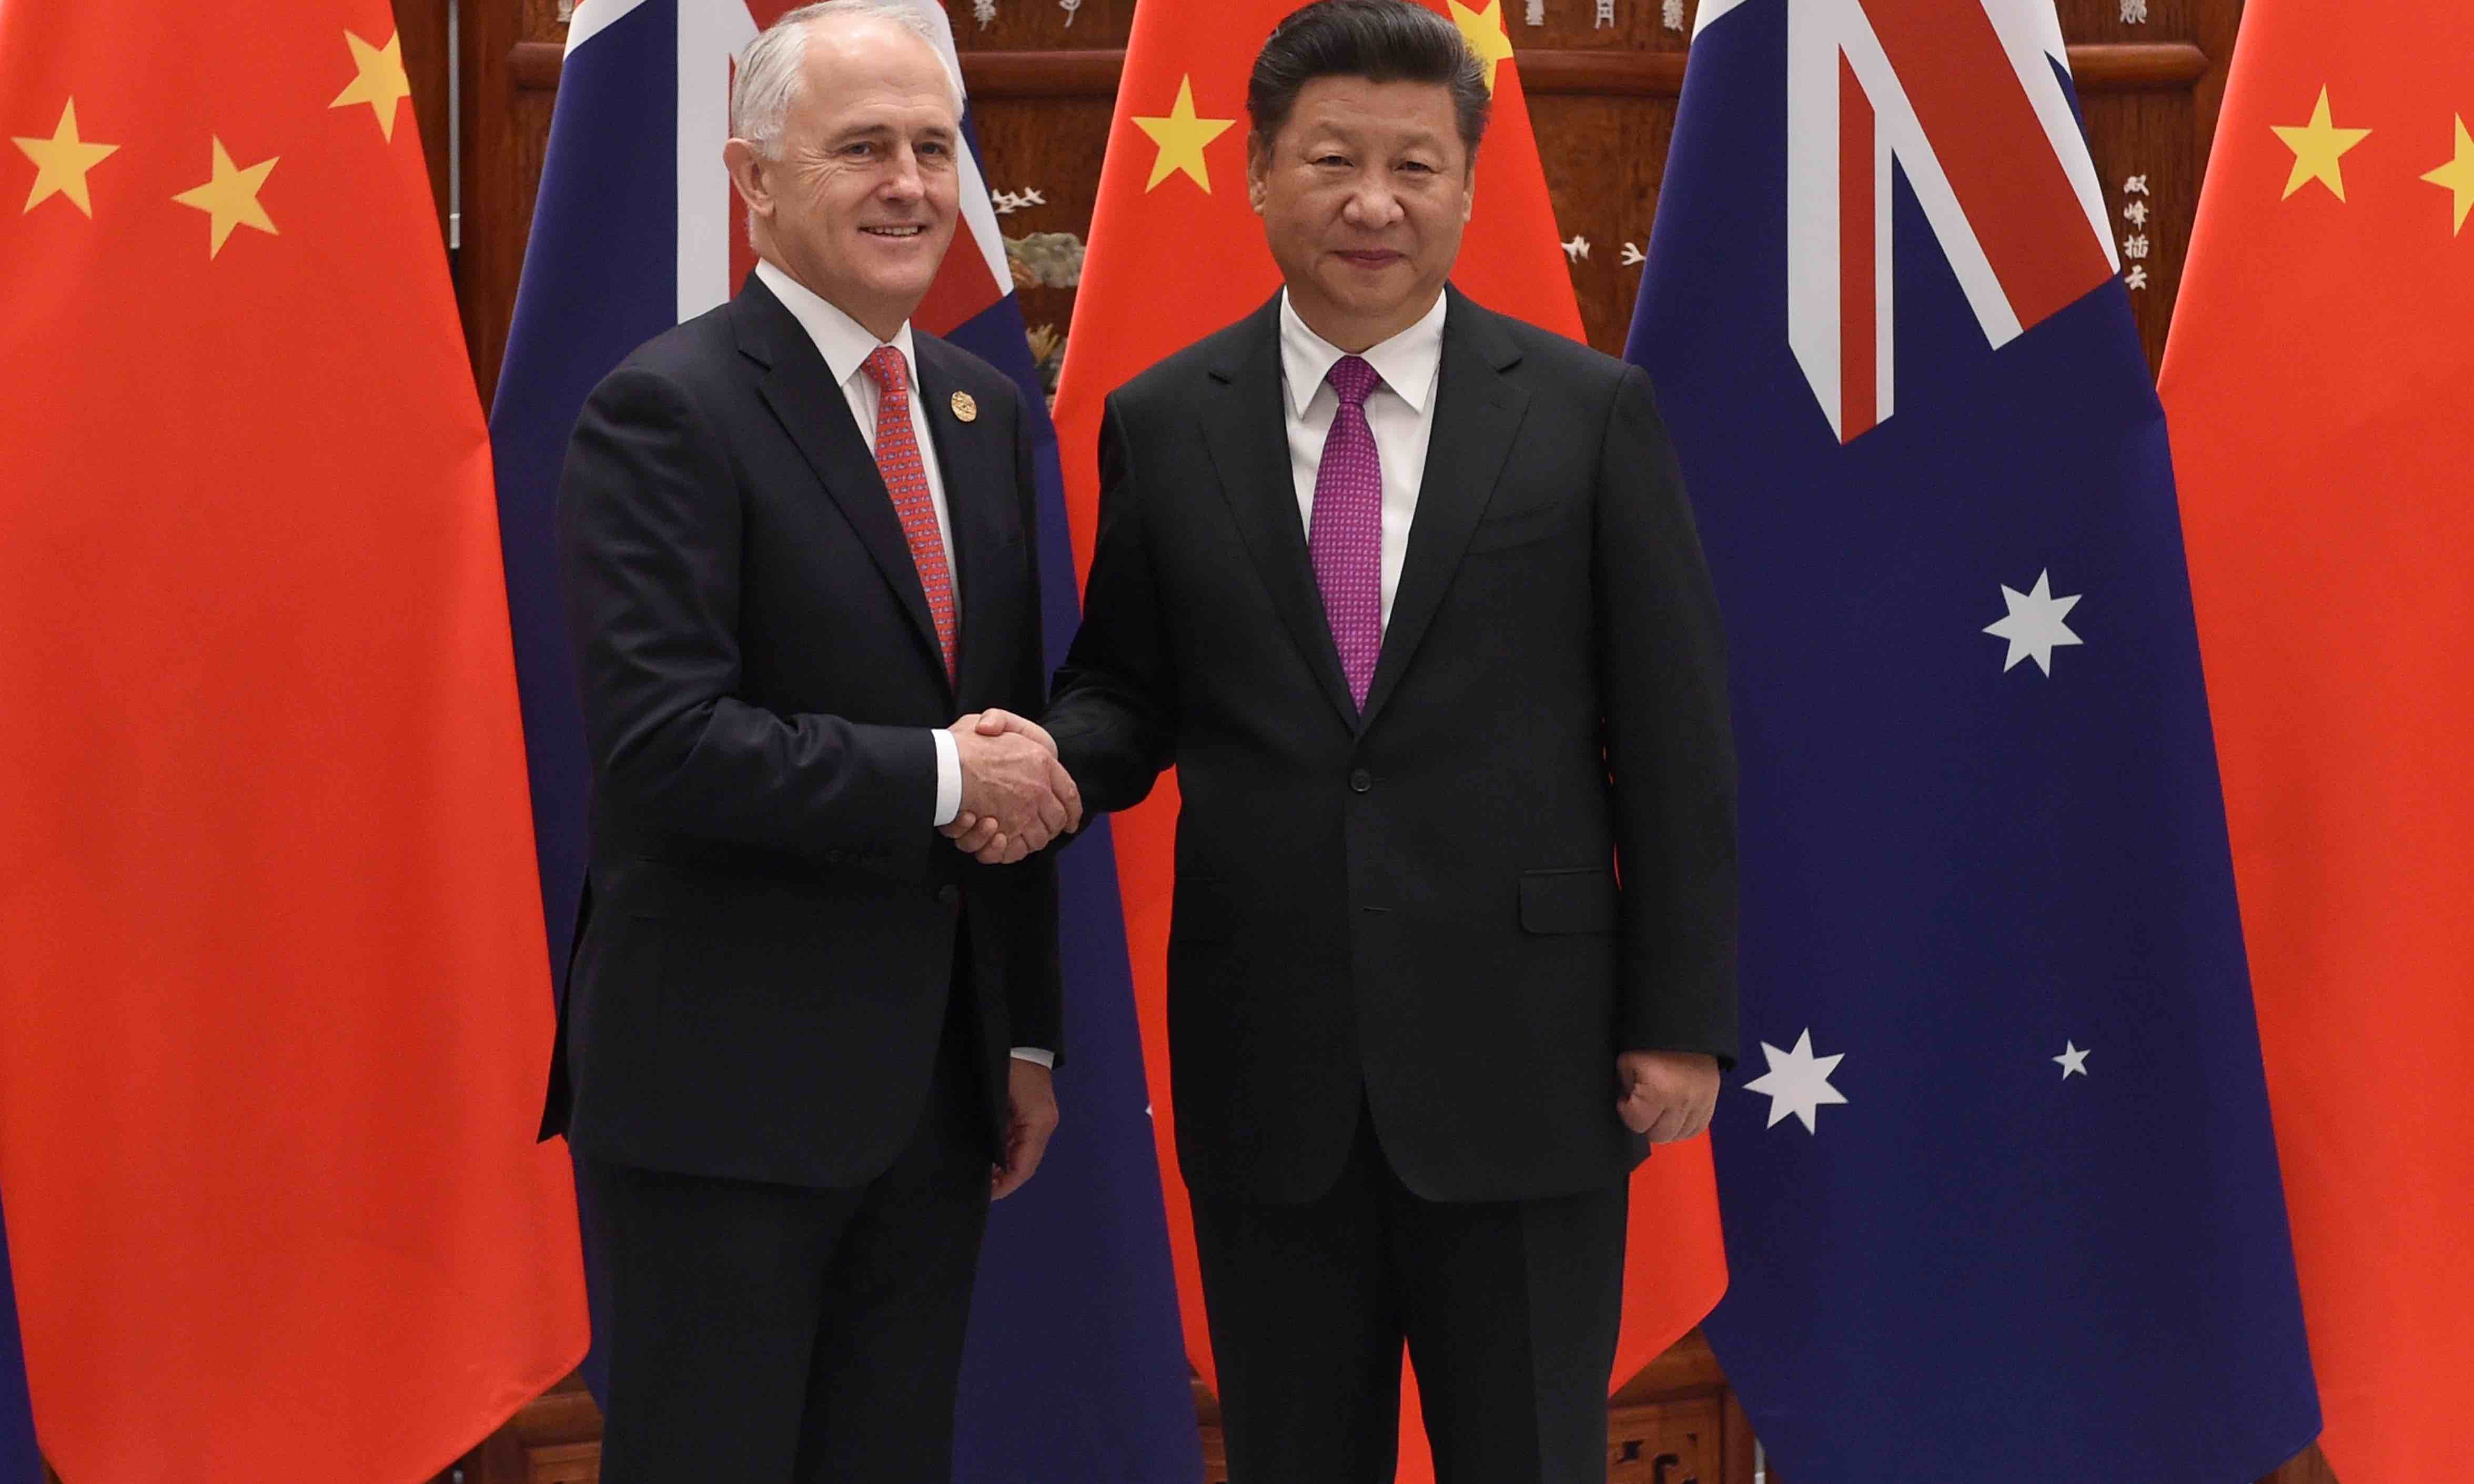 Malcolm Turnbull and Xi Jinping in Hangzhou, China, 4 September 2016 (Photo: Wang Zhou – Pool/Getty)